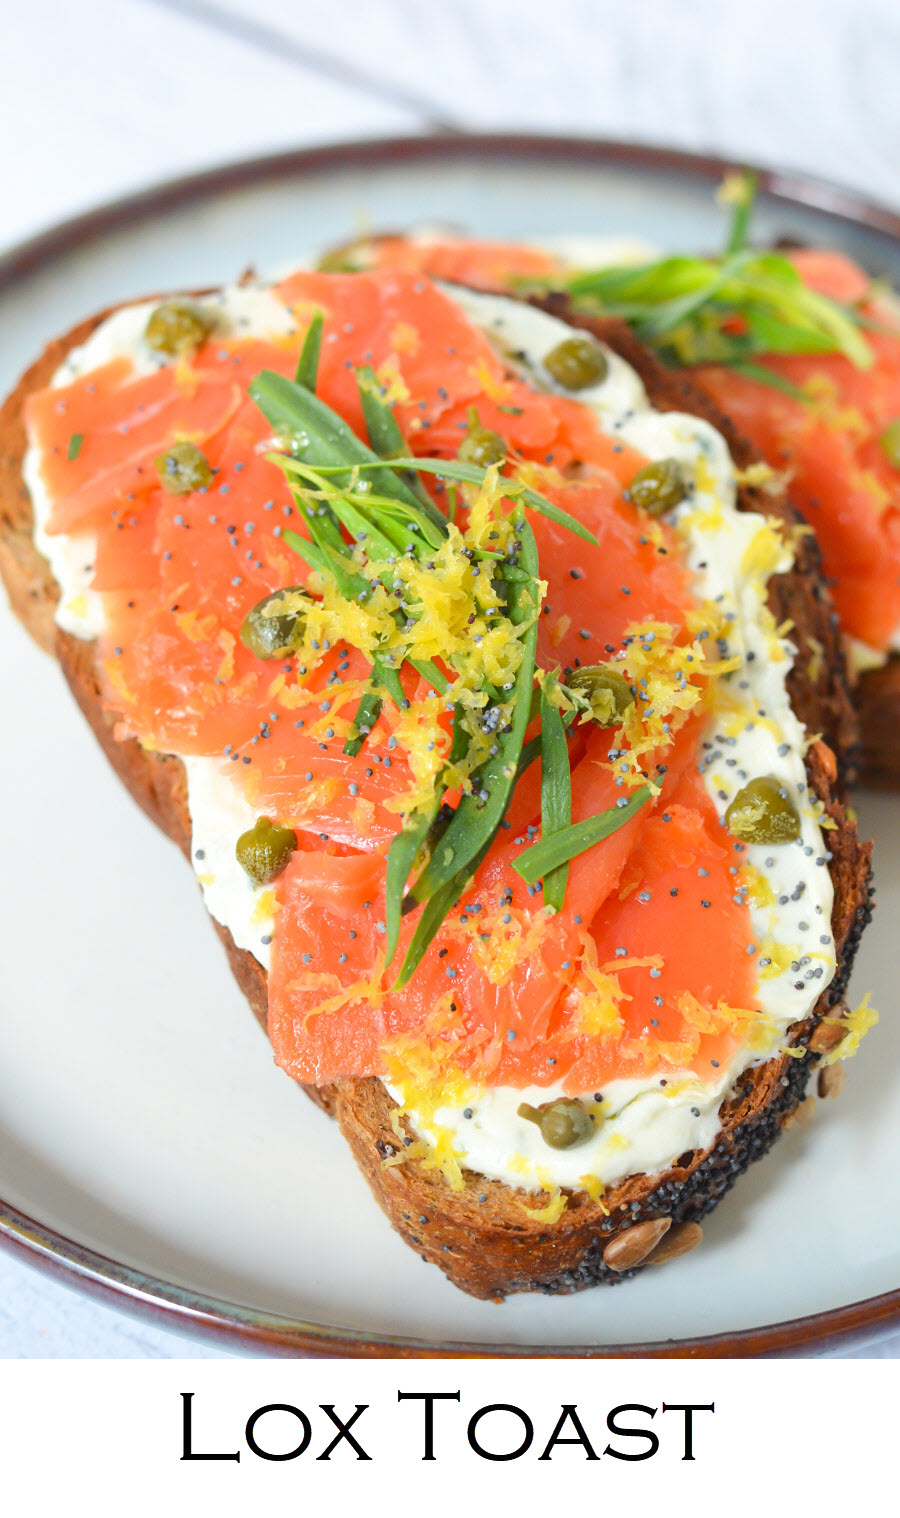 Lox Toast. Whip up this easy smoked salmon tartine for breakfast, lunch, or dinner. Good lox layered over goat cheese on delicious bread! #breakfast #brunch #salmon #tartine #toasts #recipe #foodblog #homemade #foodblogger #lmrecipes